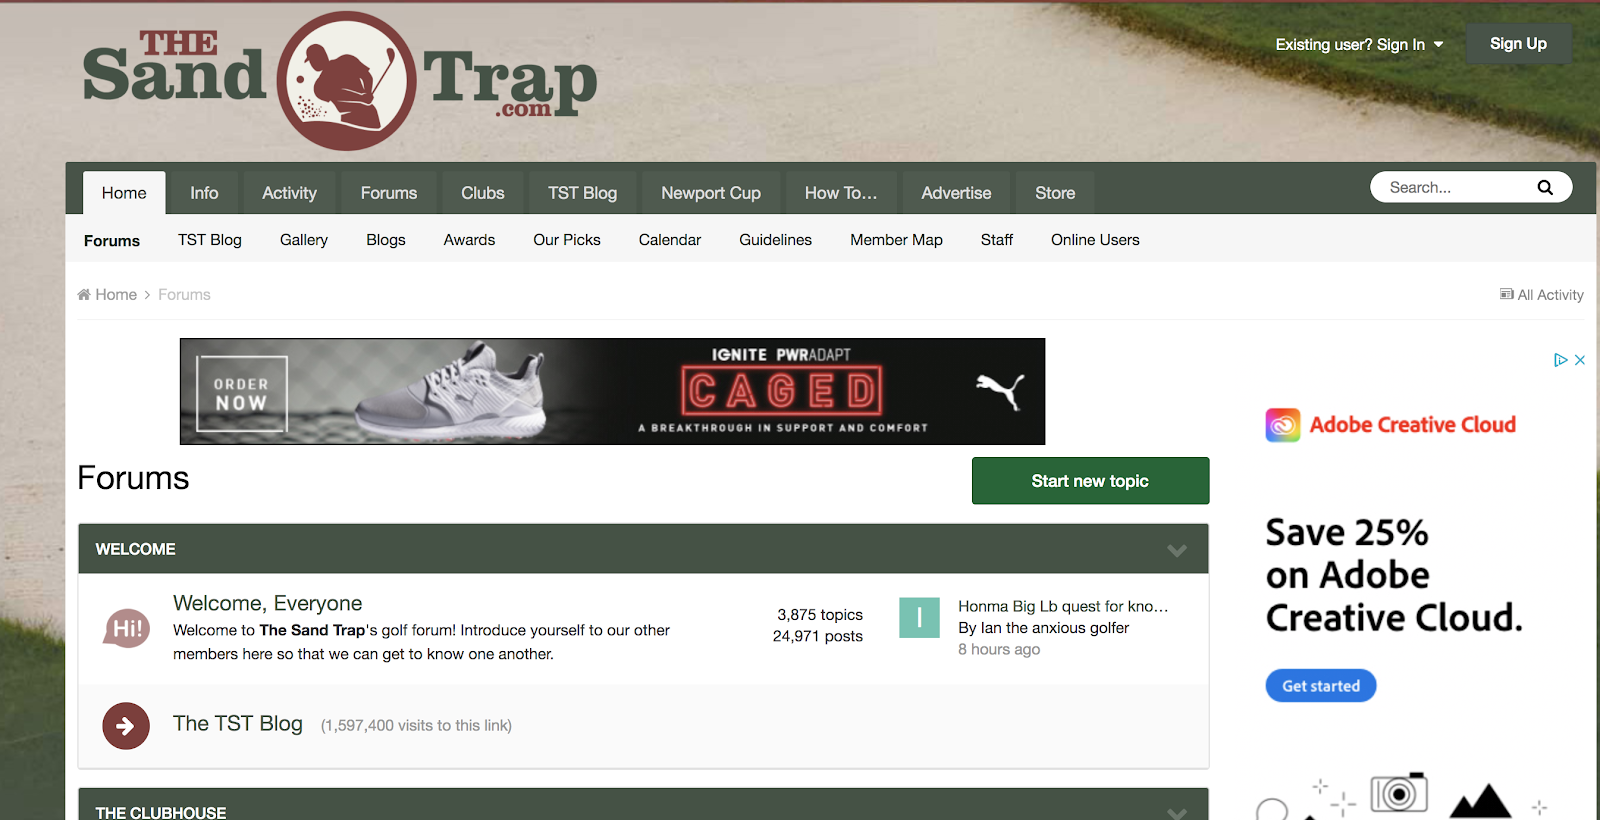 The Sand Trap Screenshot (Example of a Discussion Site for Blog Marketing Efforts)